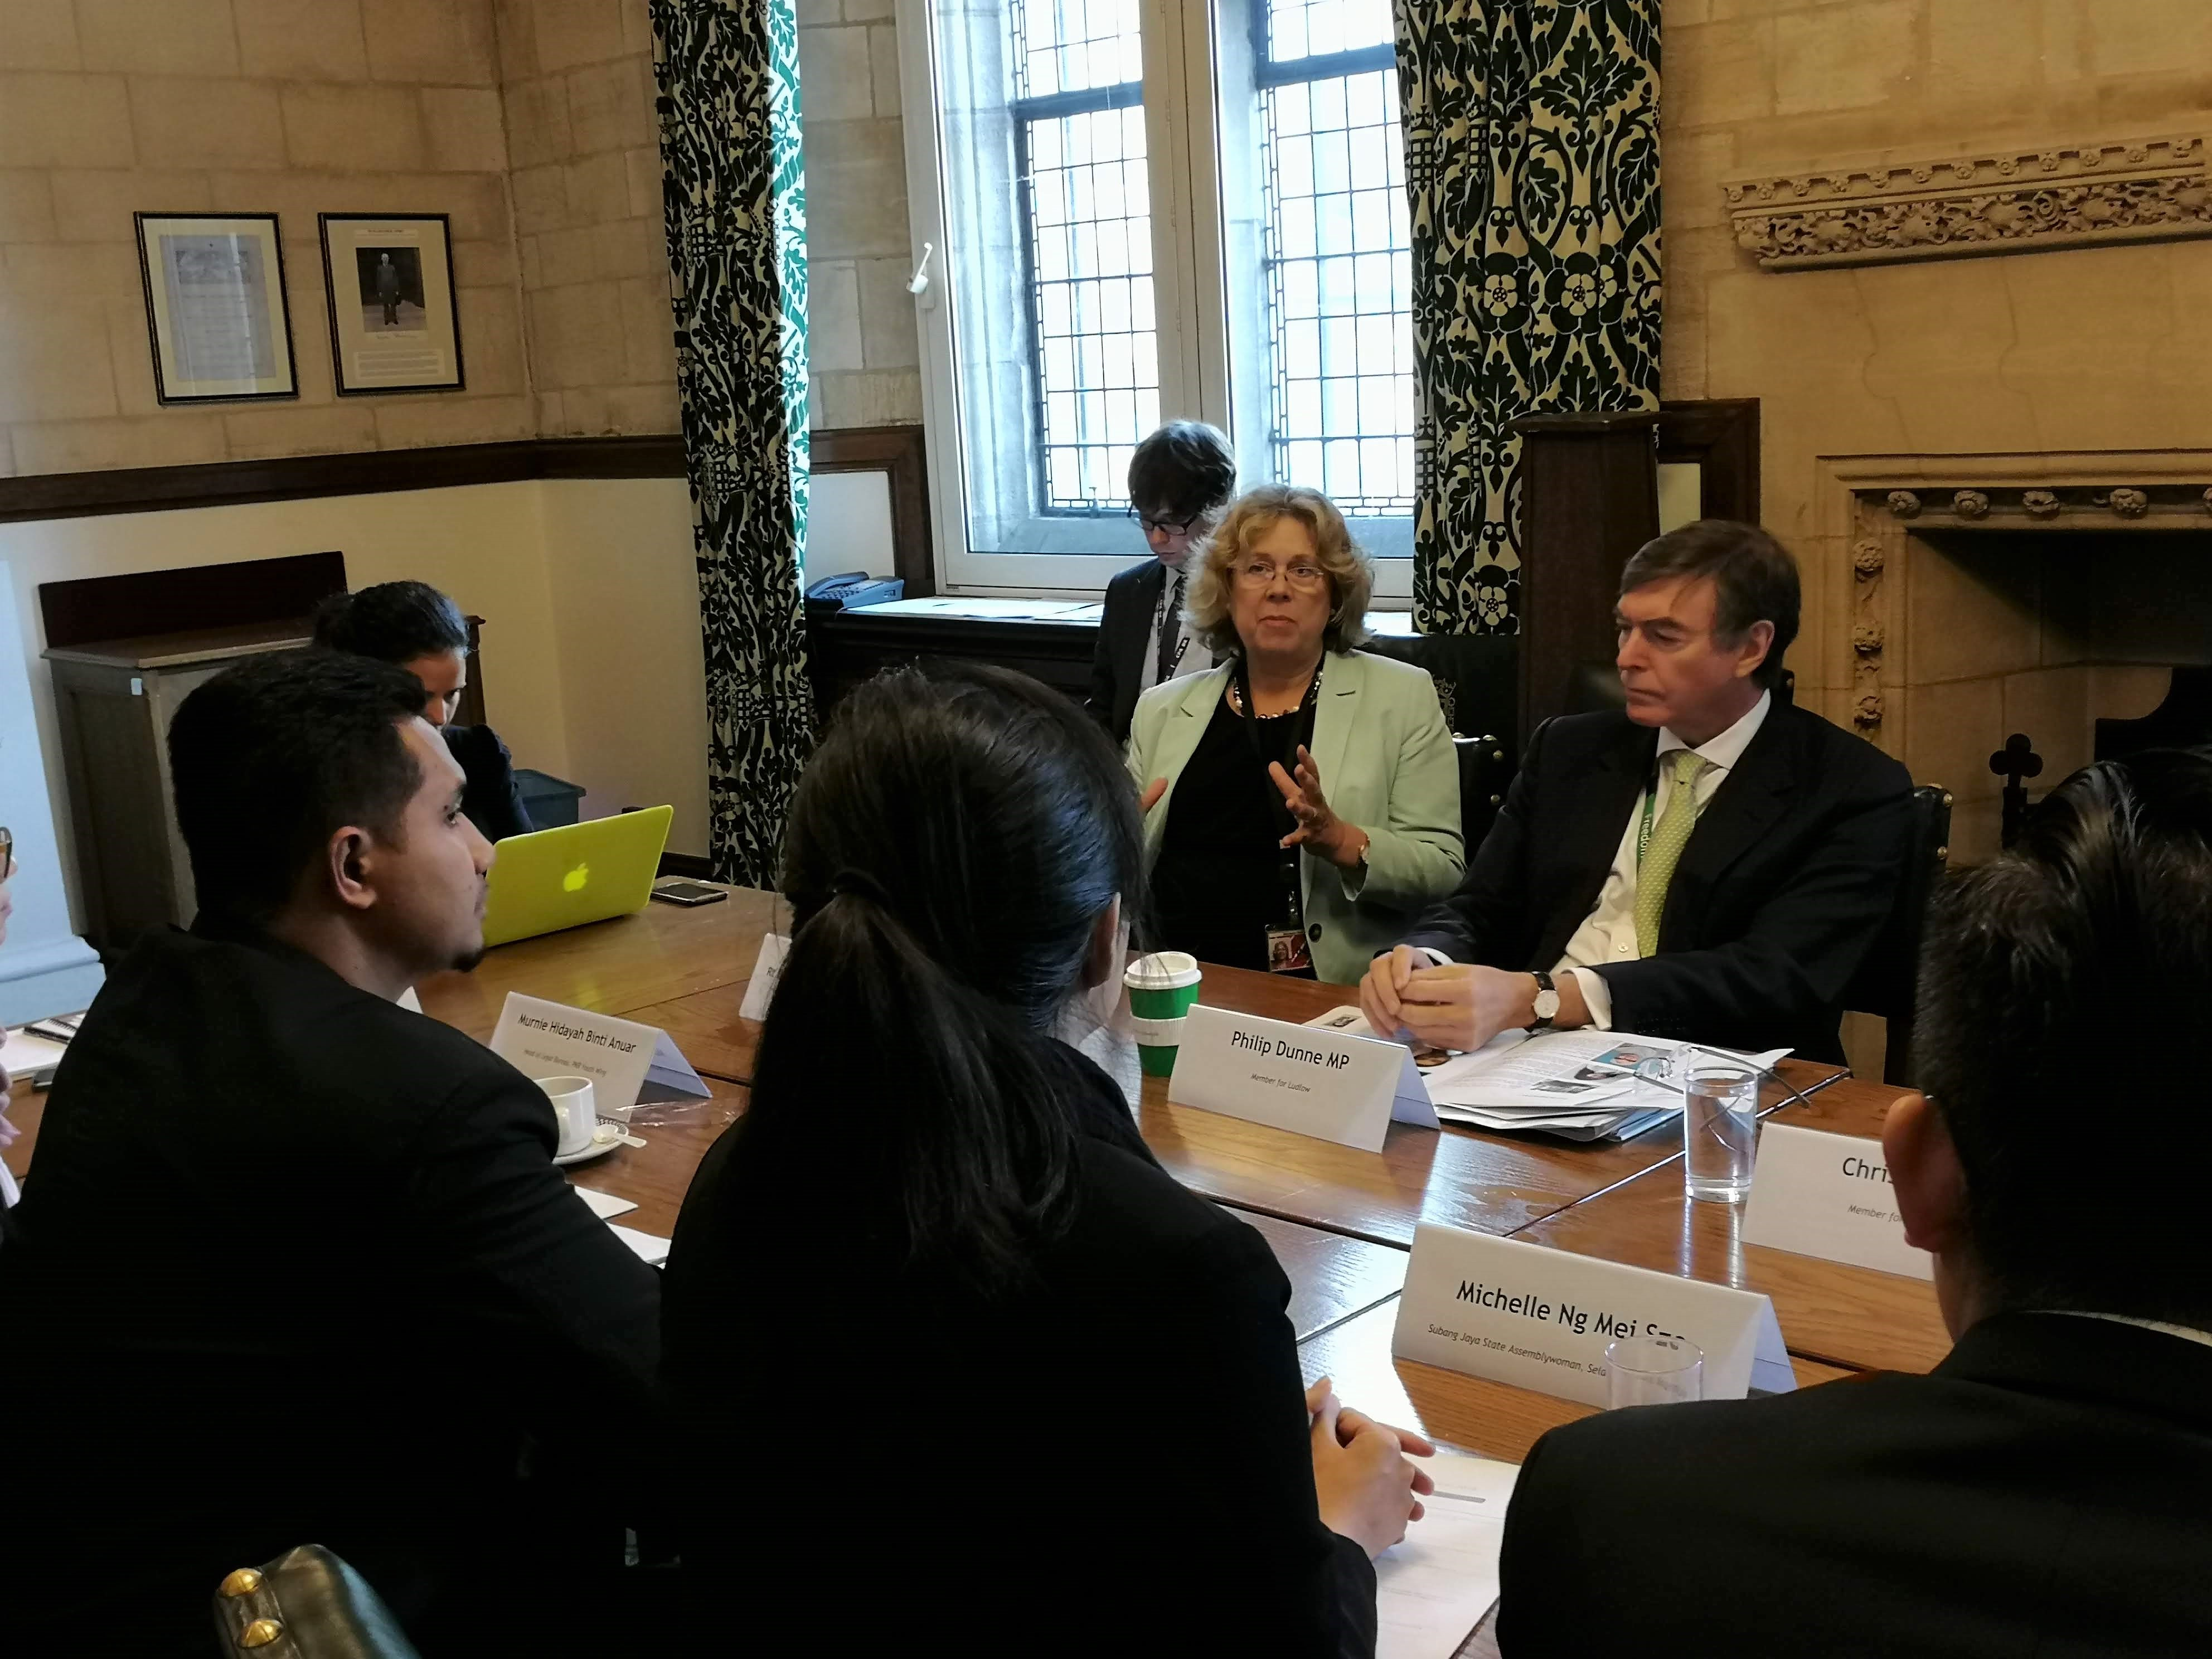 The Rt Hon. the Baroness Northover and Philip Dunne MP in conversation with the delegation